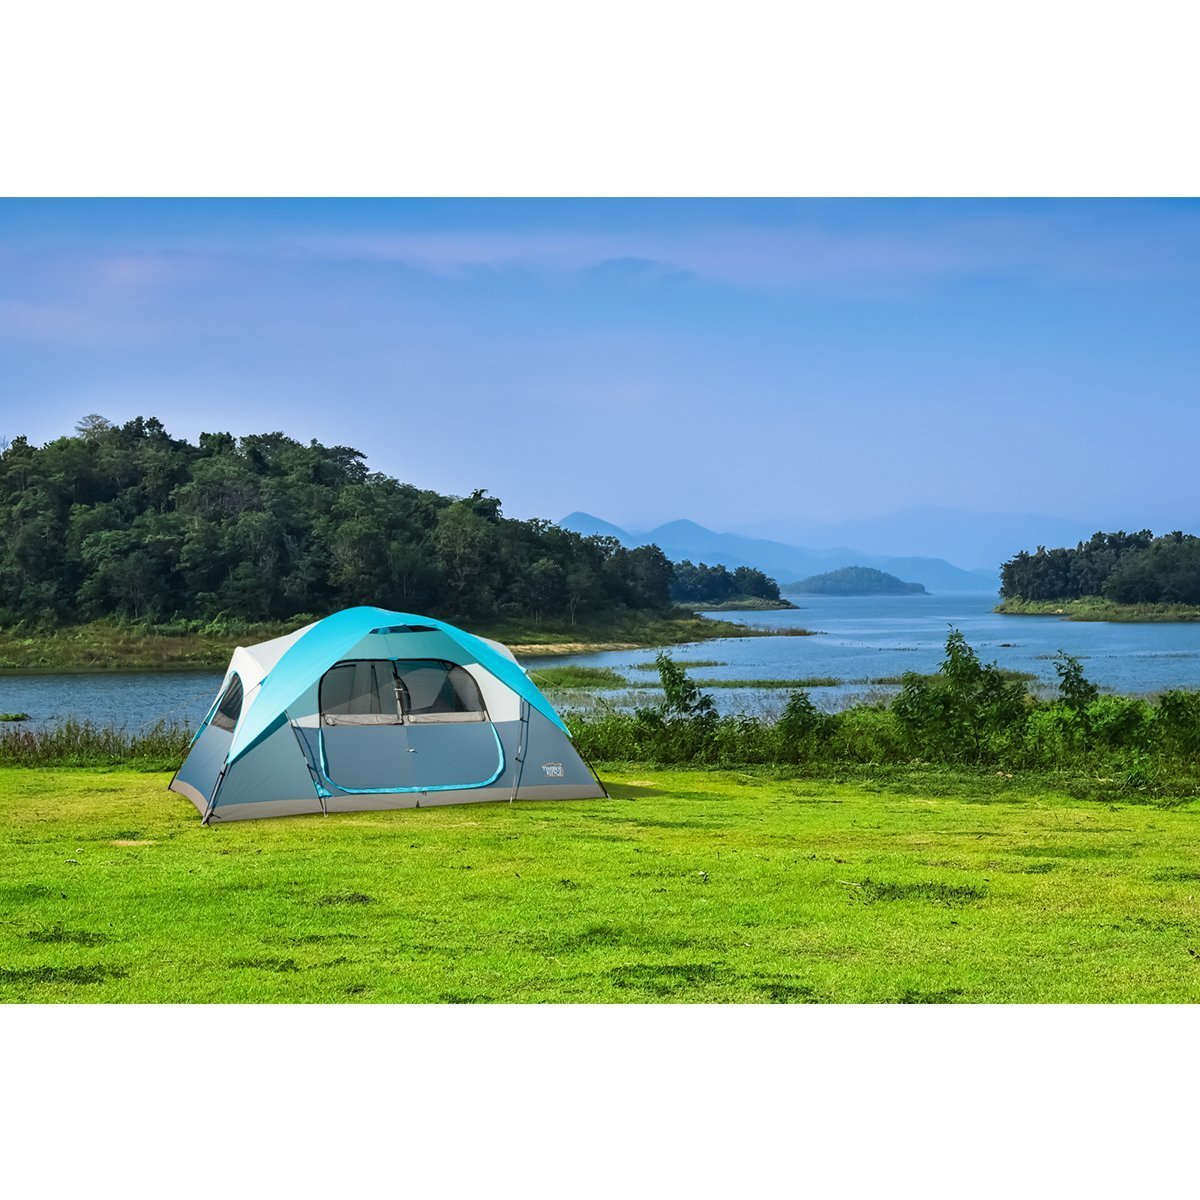 Timber Ridge Large Family Tent for Camping with Carry Bag, 2 Rooms by Timber Ridge (Image #2)